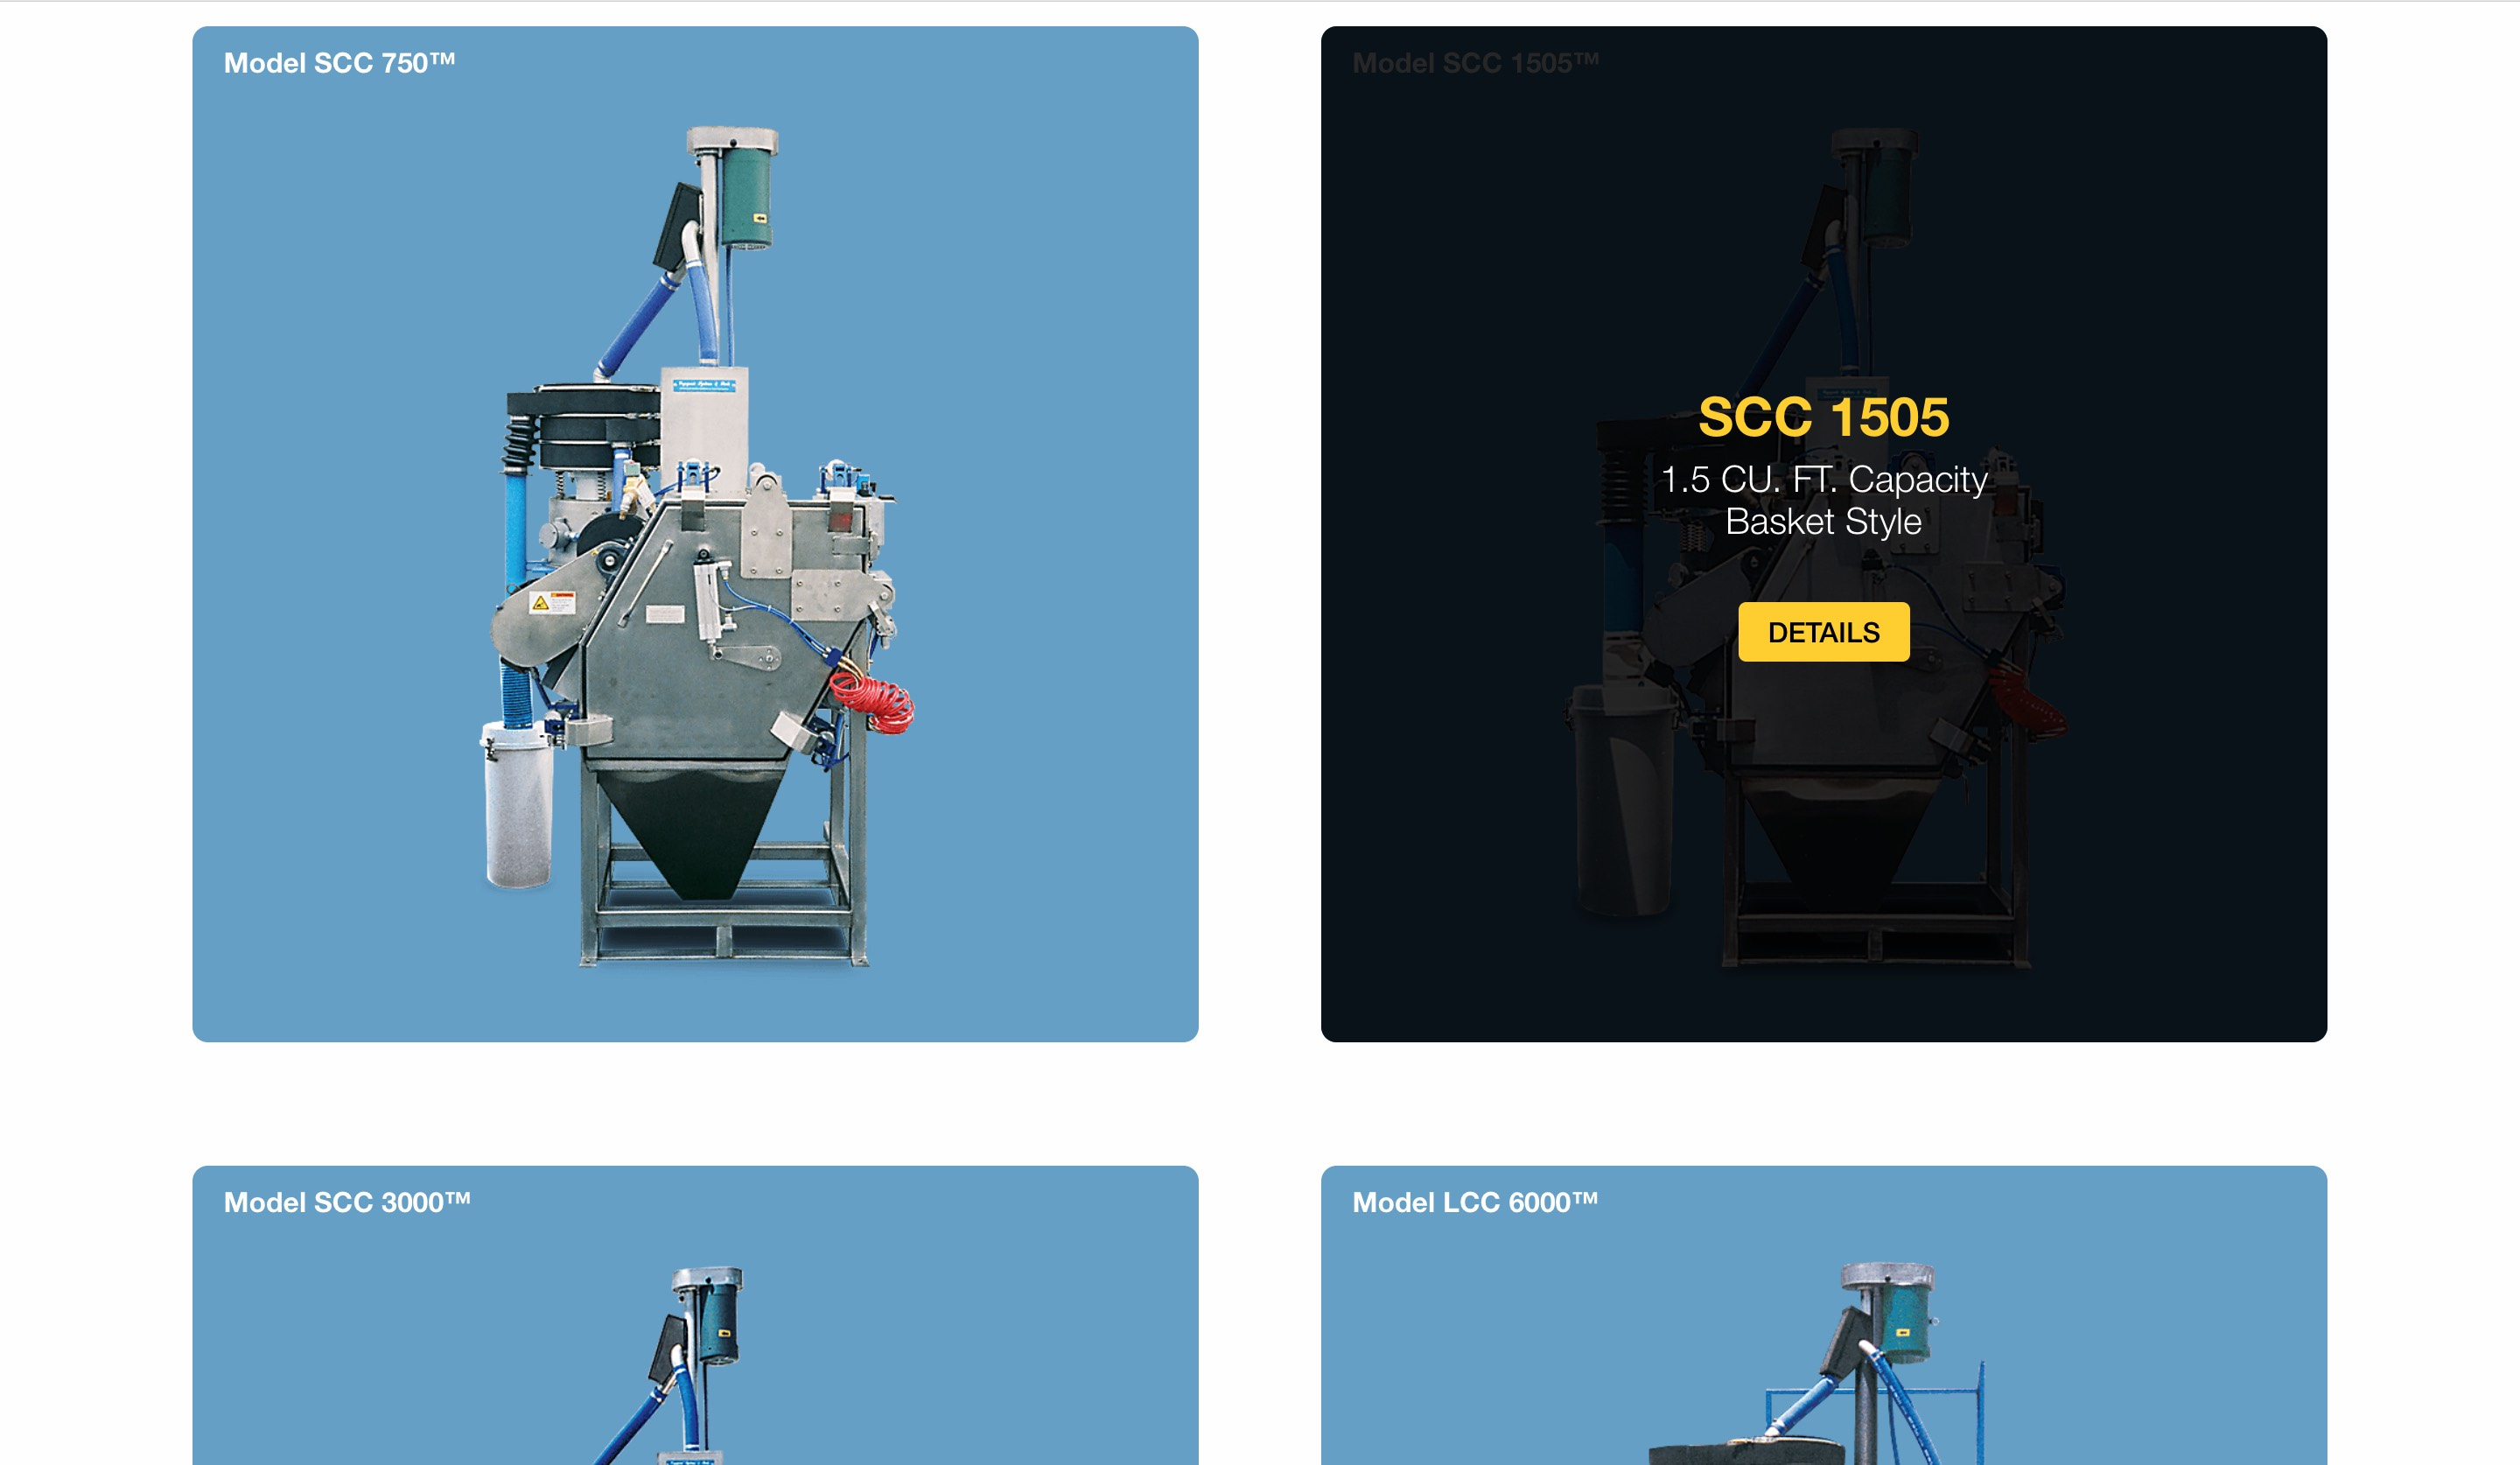 Cryogenic Systems equipment page screenshot